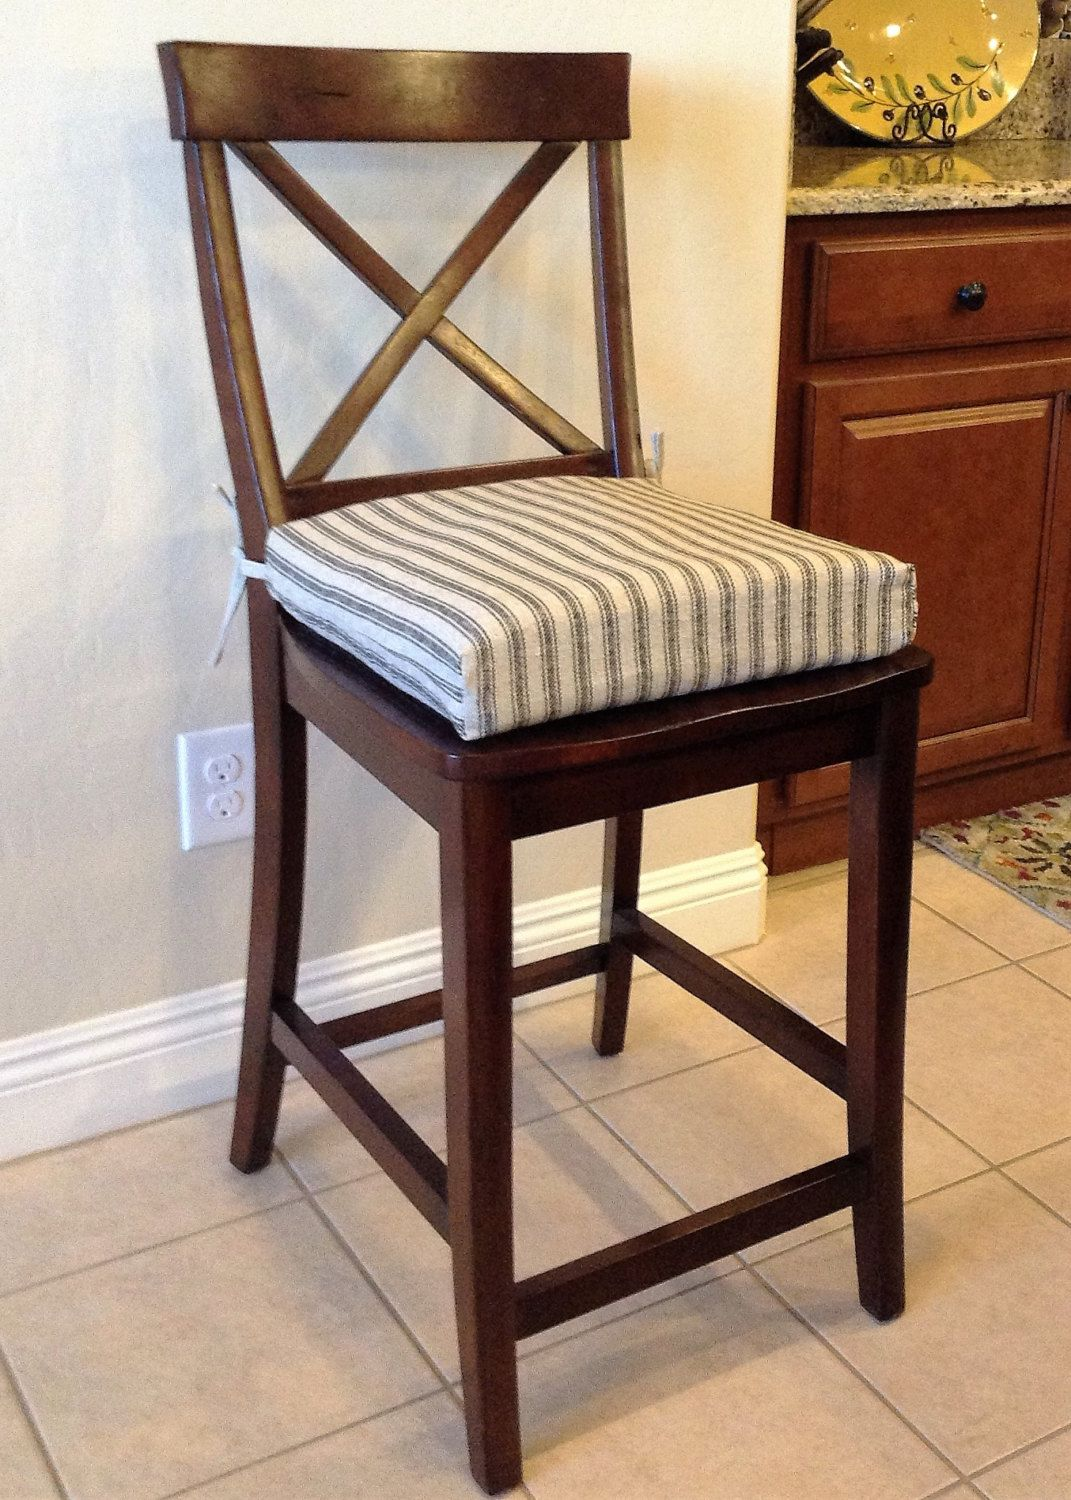 What Type Of Fabric To Cover Kitchen Chairs Buy Christmas Chair Covers Rustic French Ticking Cushion Barstool Counter Stool Seat Pad Natural Denton With Black Stripe Washable